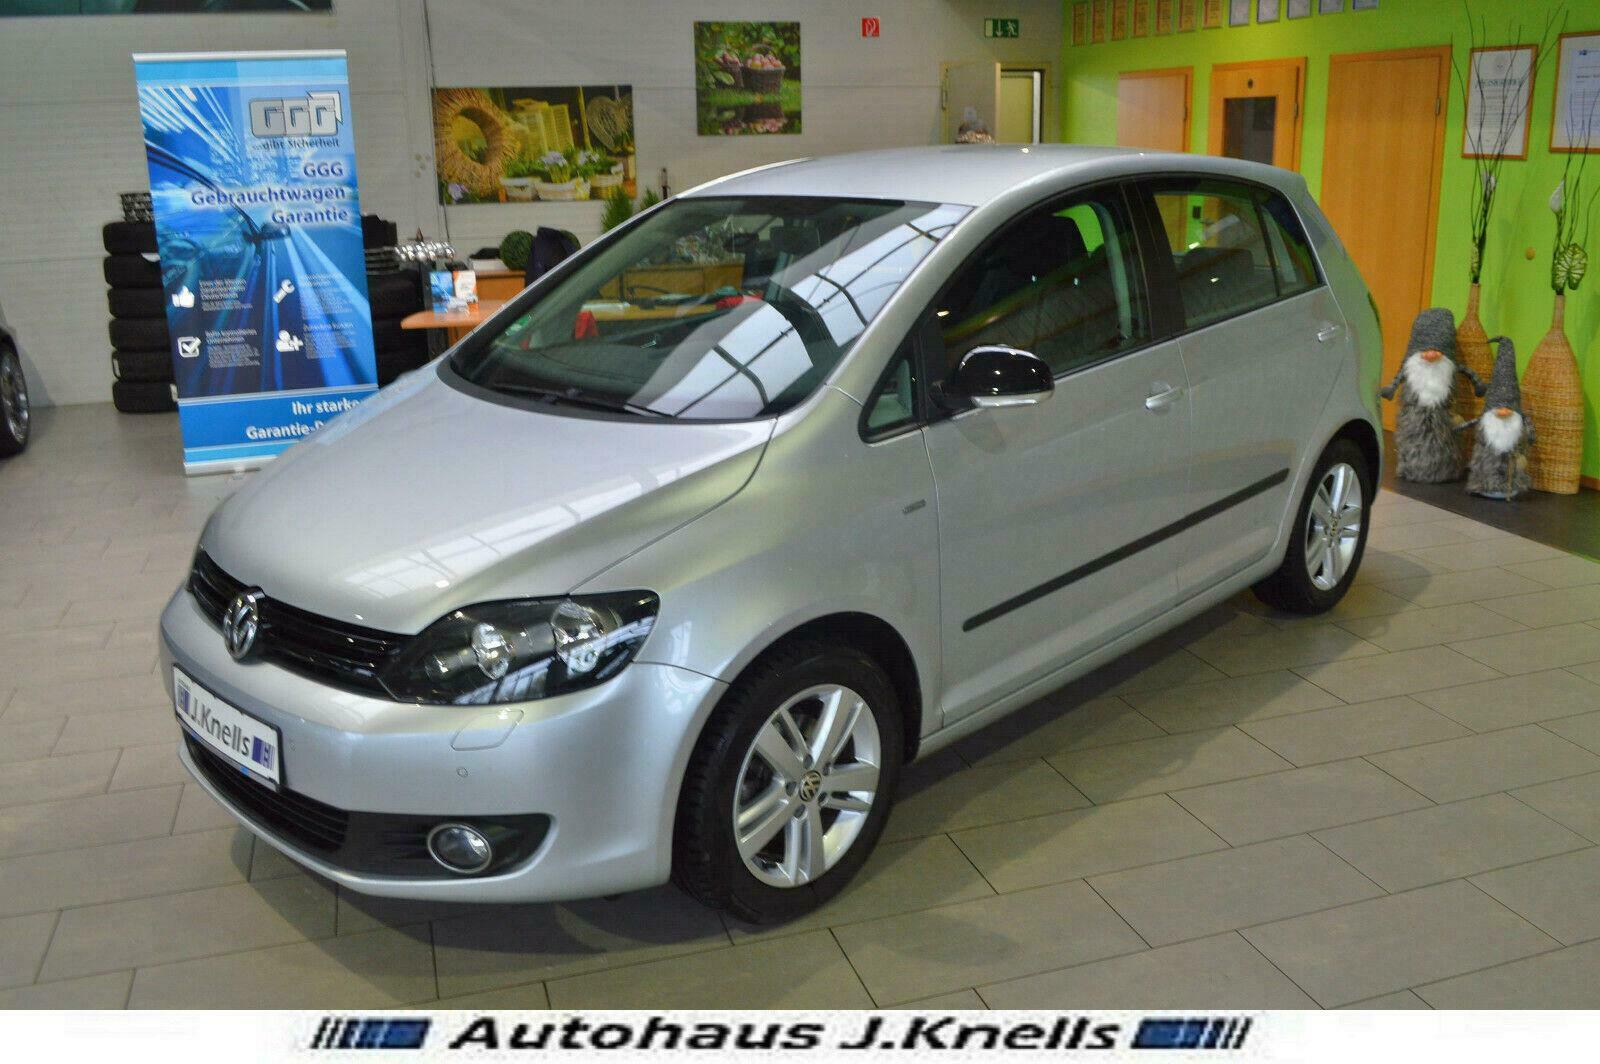 VW Golf VI Plus Match BMT/Orig. 72300km/SHZ/PDC/ALU